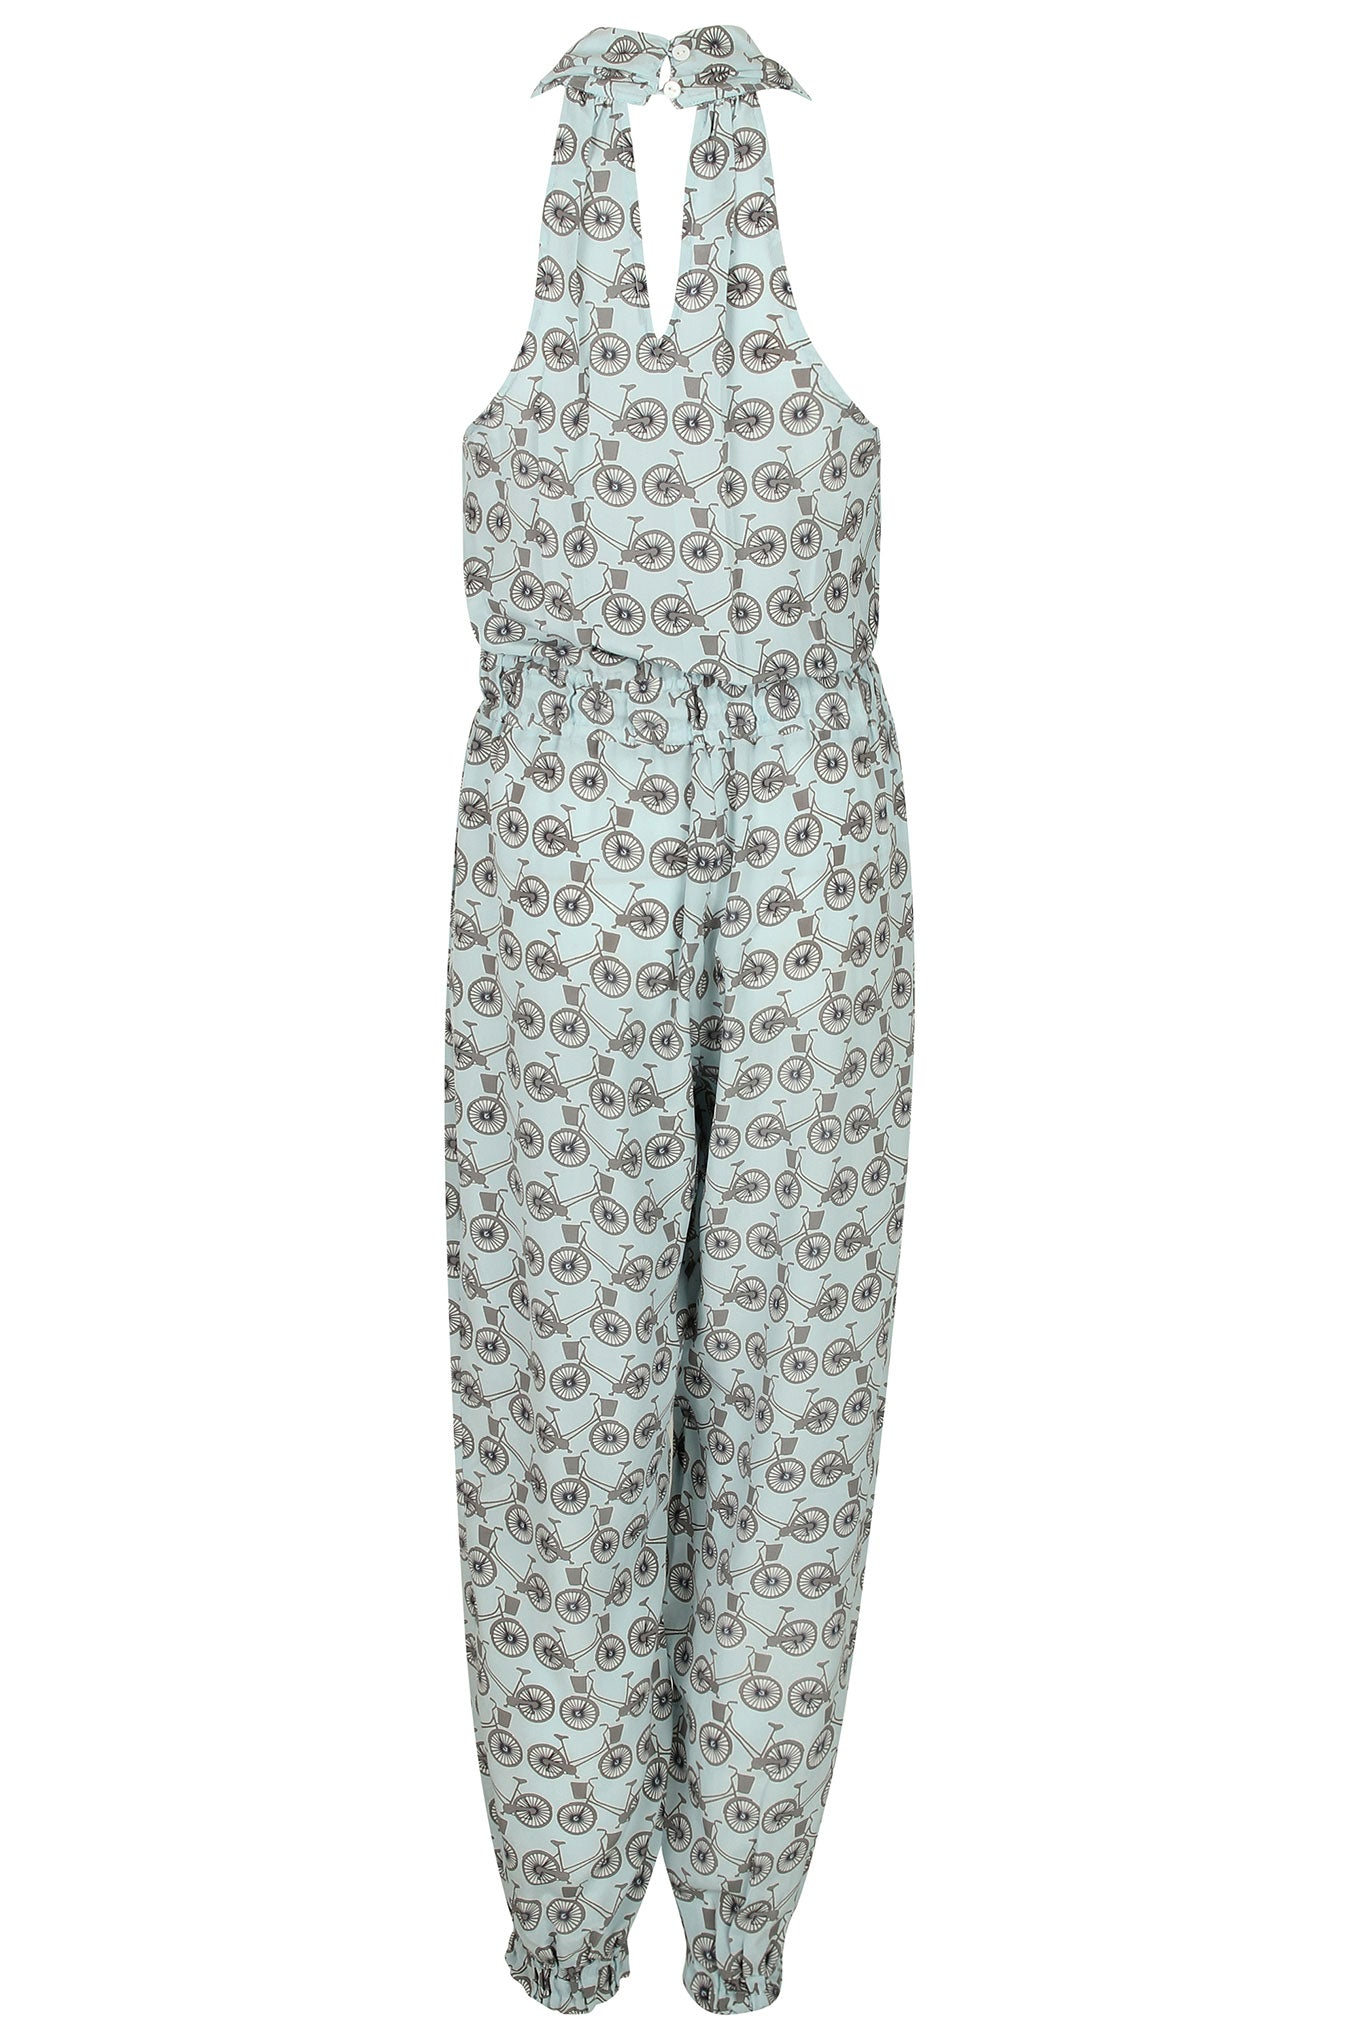 Lotty B Jumpsuit in Silk Crepe-de-Chine: BICYCLE - BLACK/PALE BLUE Back